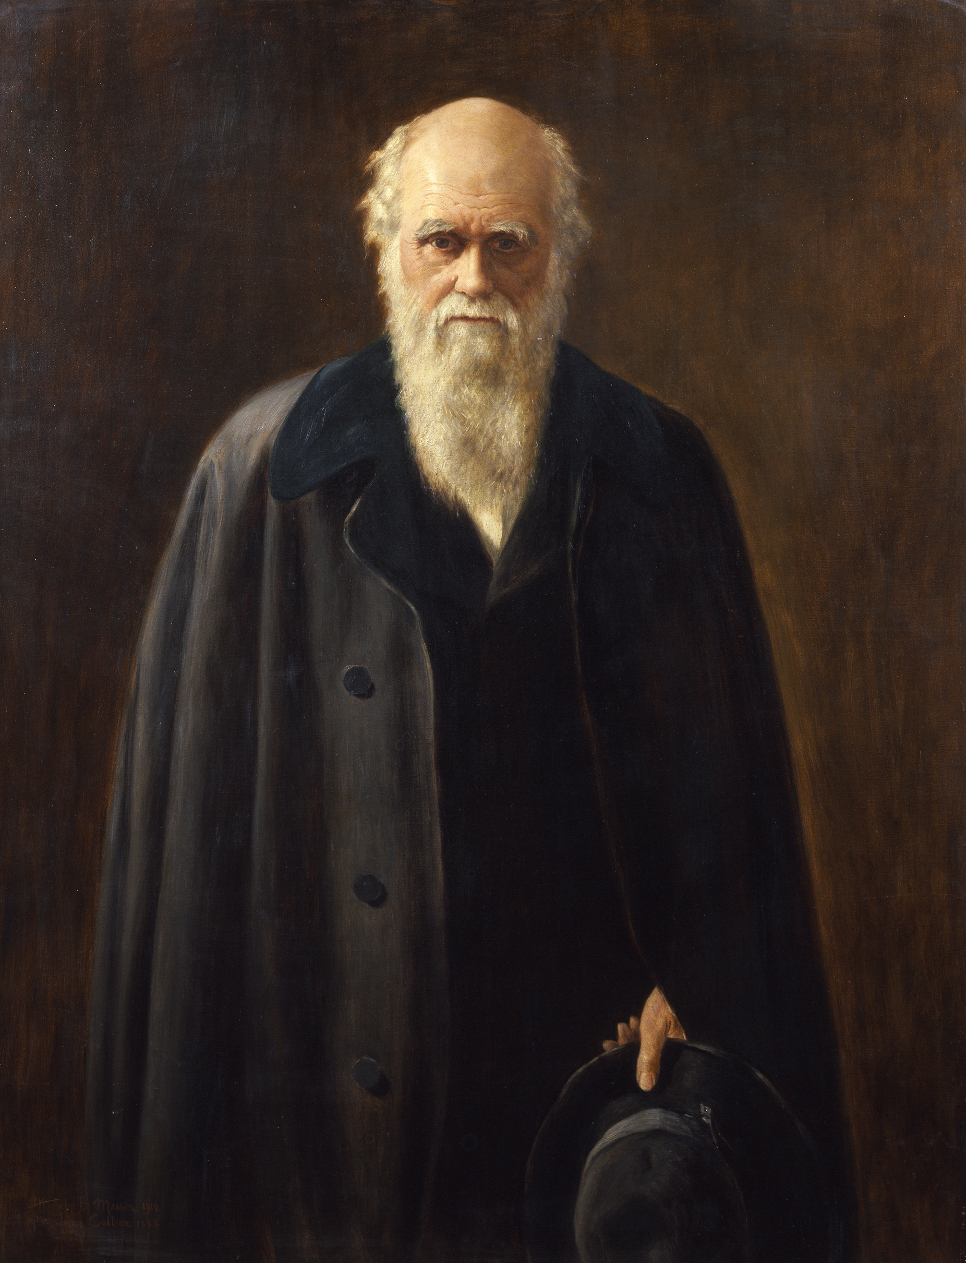 Charles Darwin: long-winded geologist